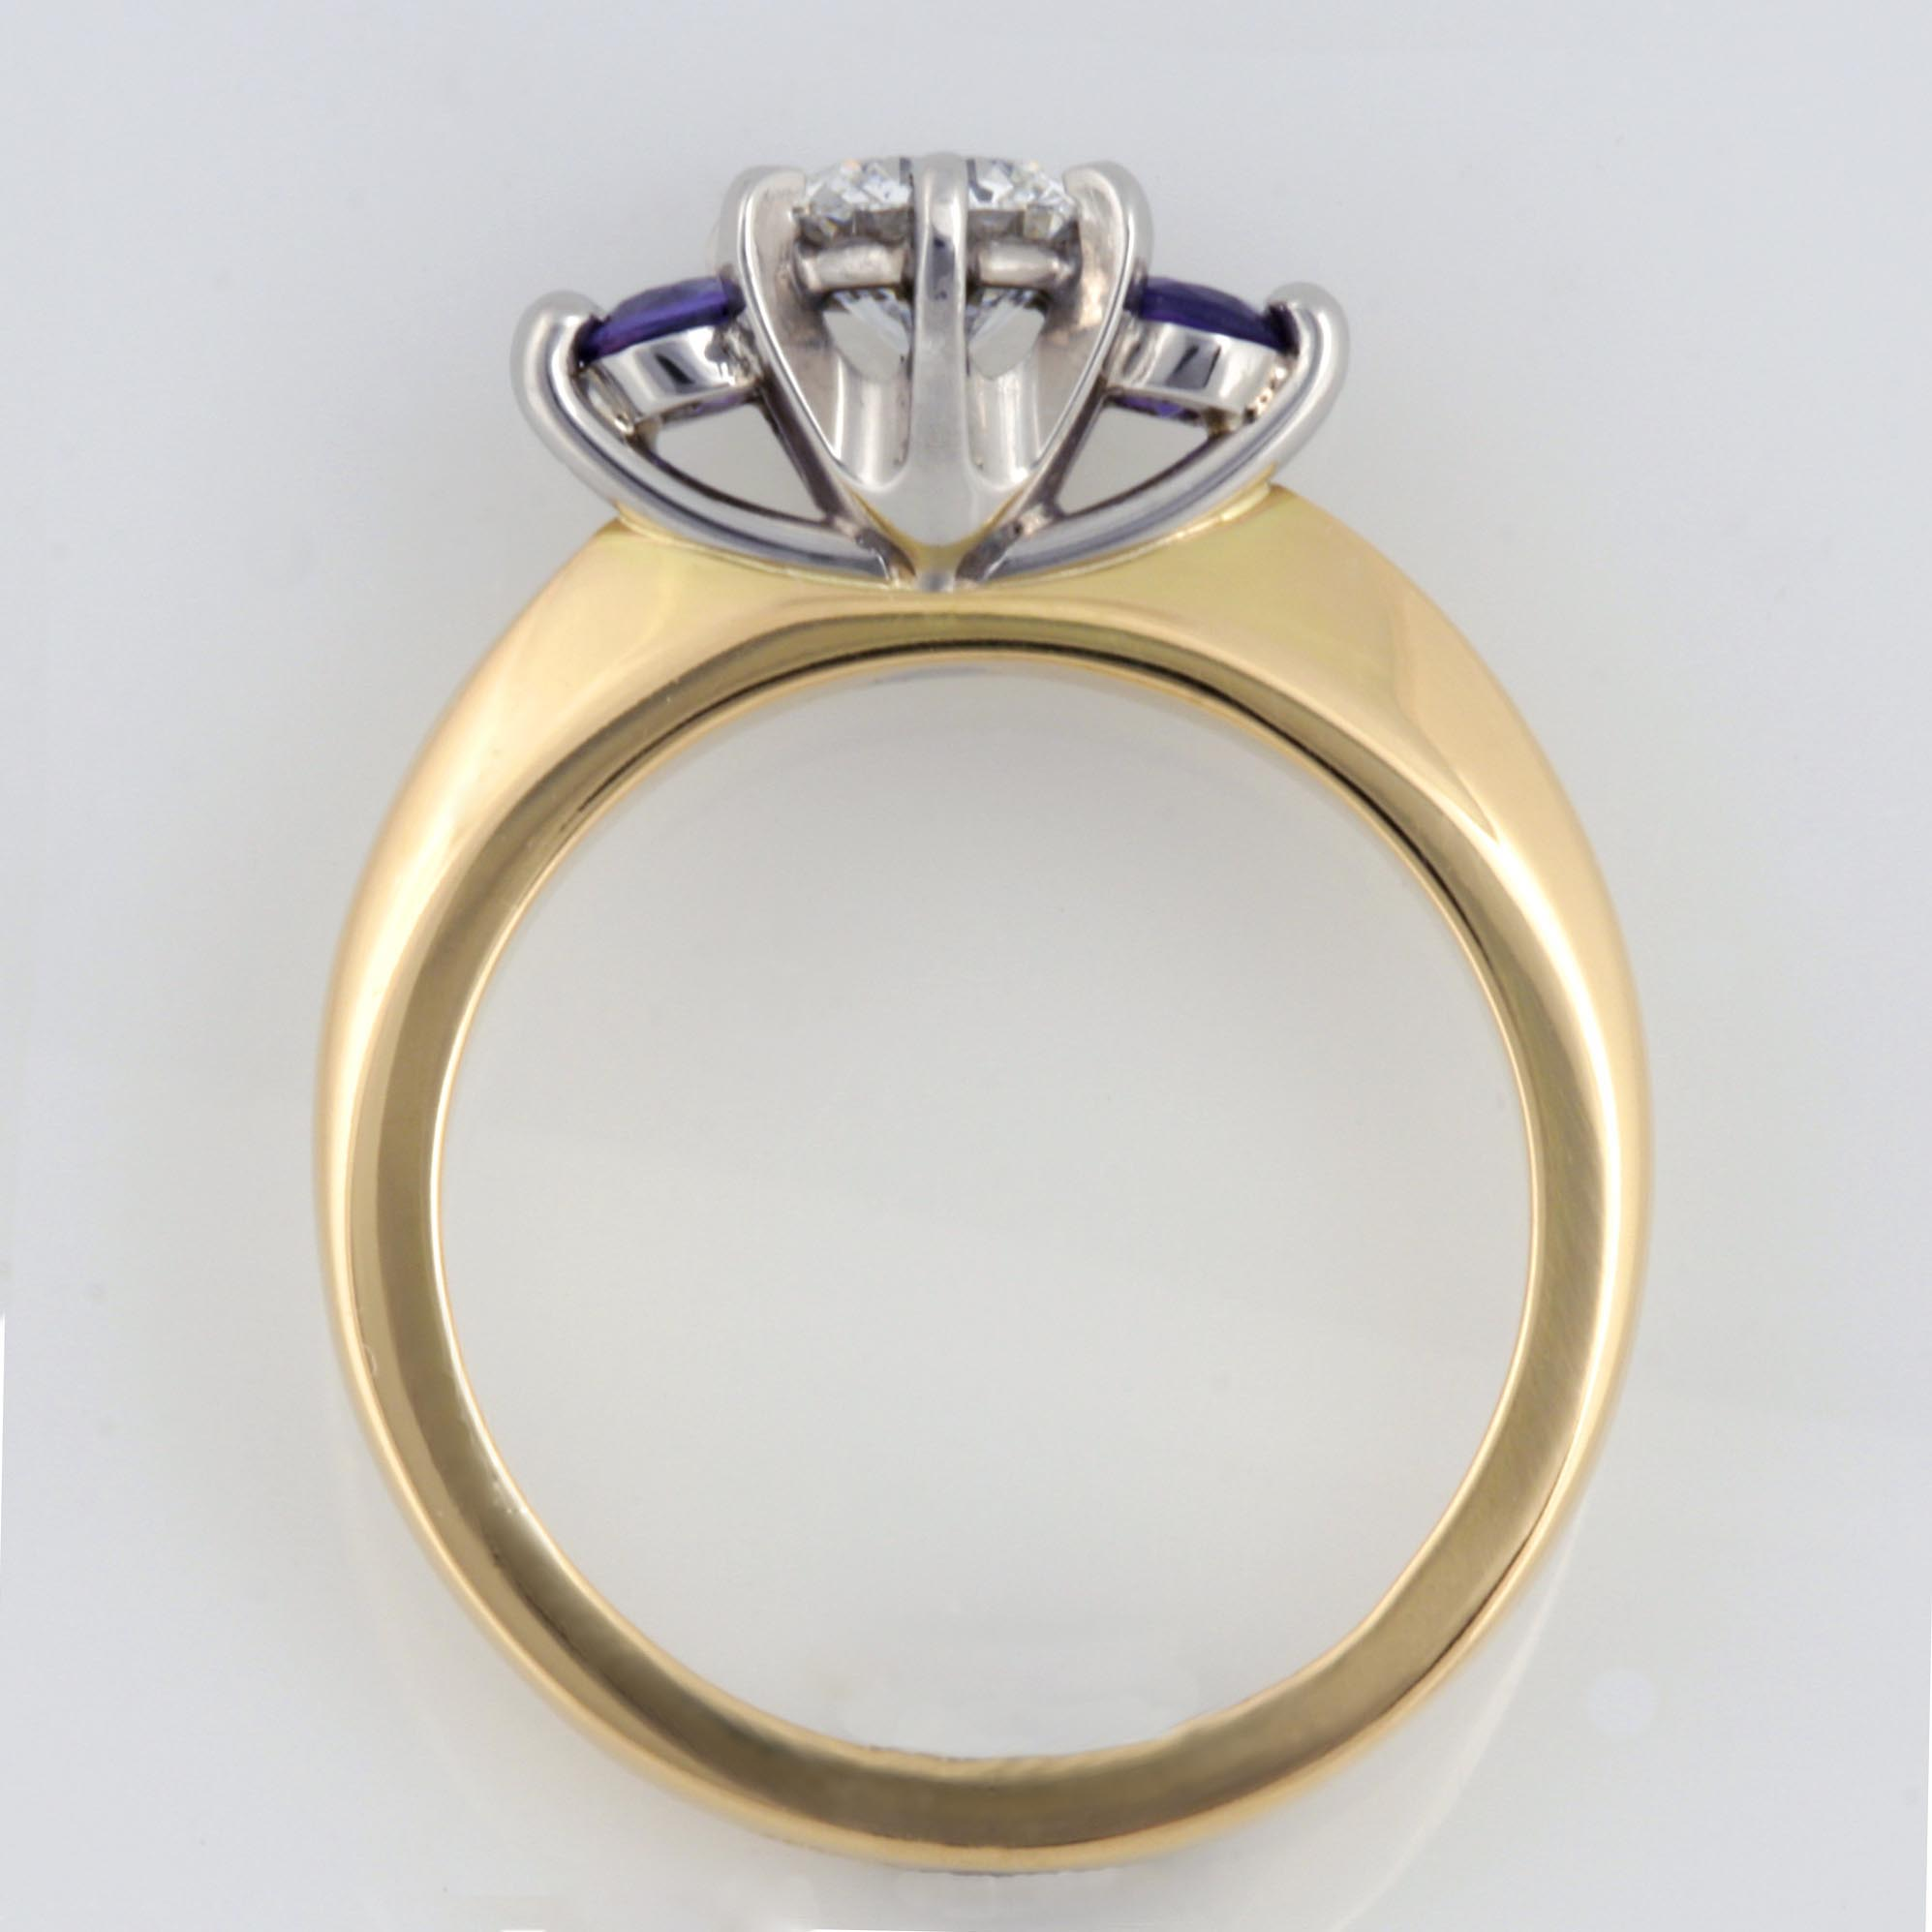 Handmade ladies 18ct yellow gold and palladium engagement ring featuring a brilliant cut diamond and purple sapphires